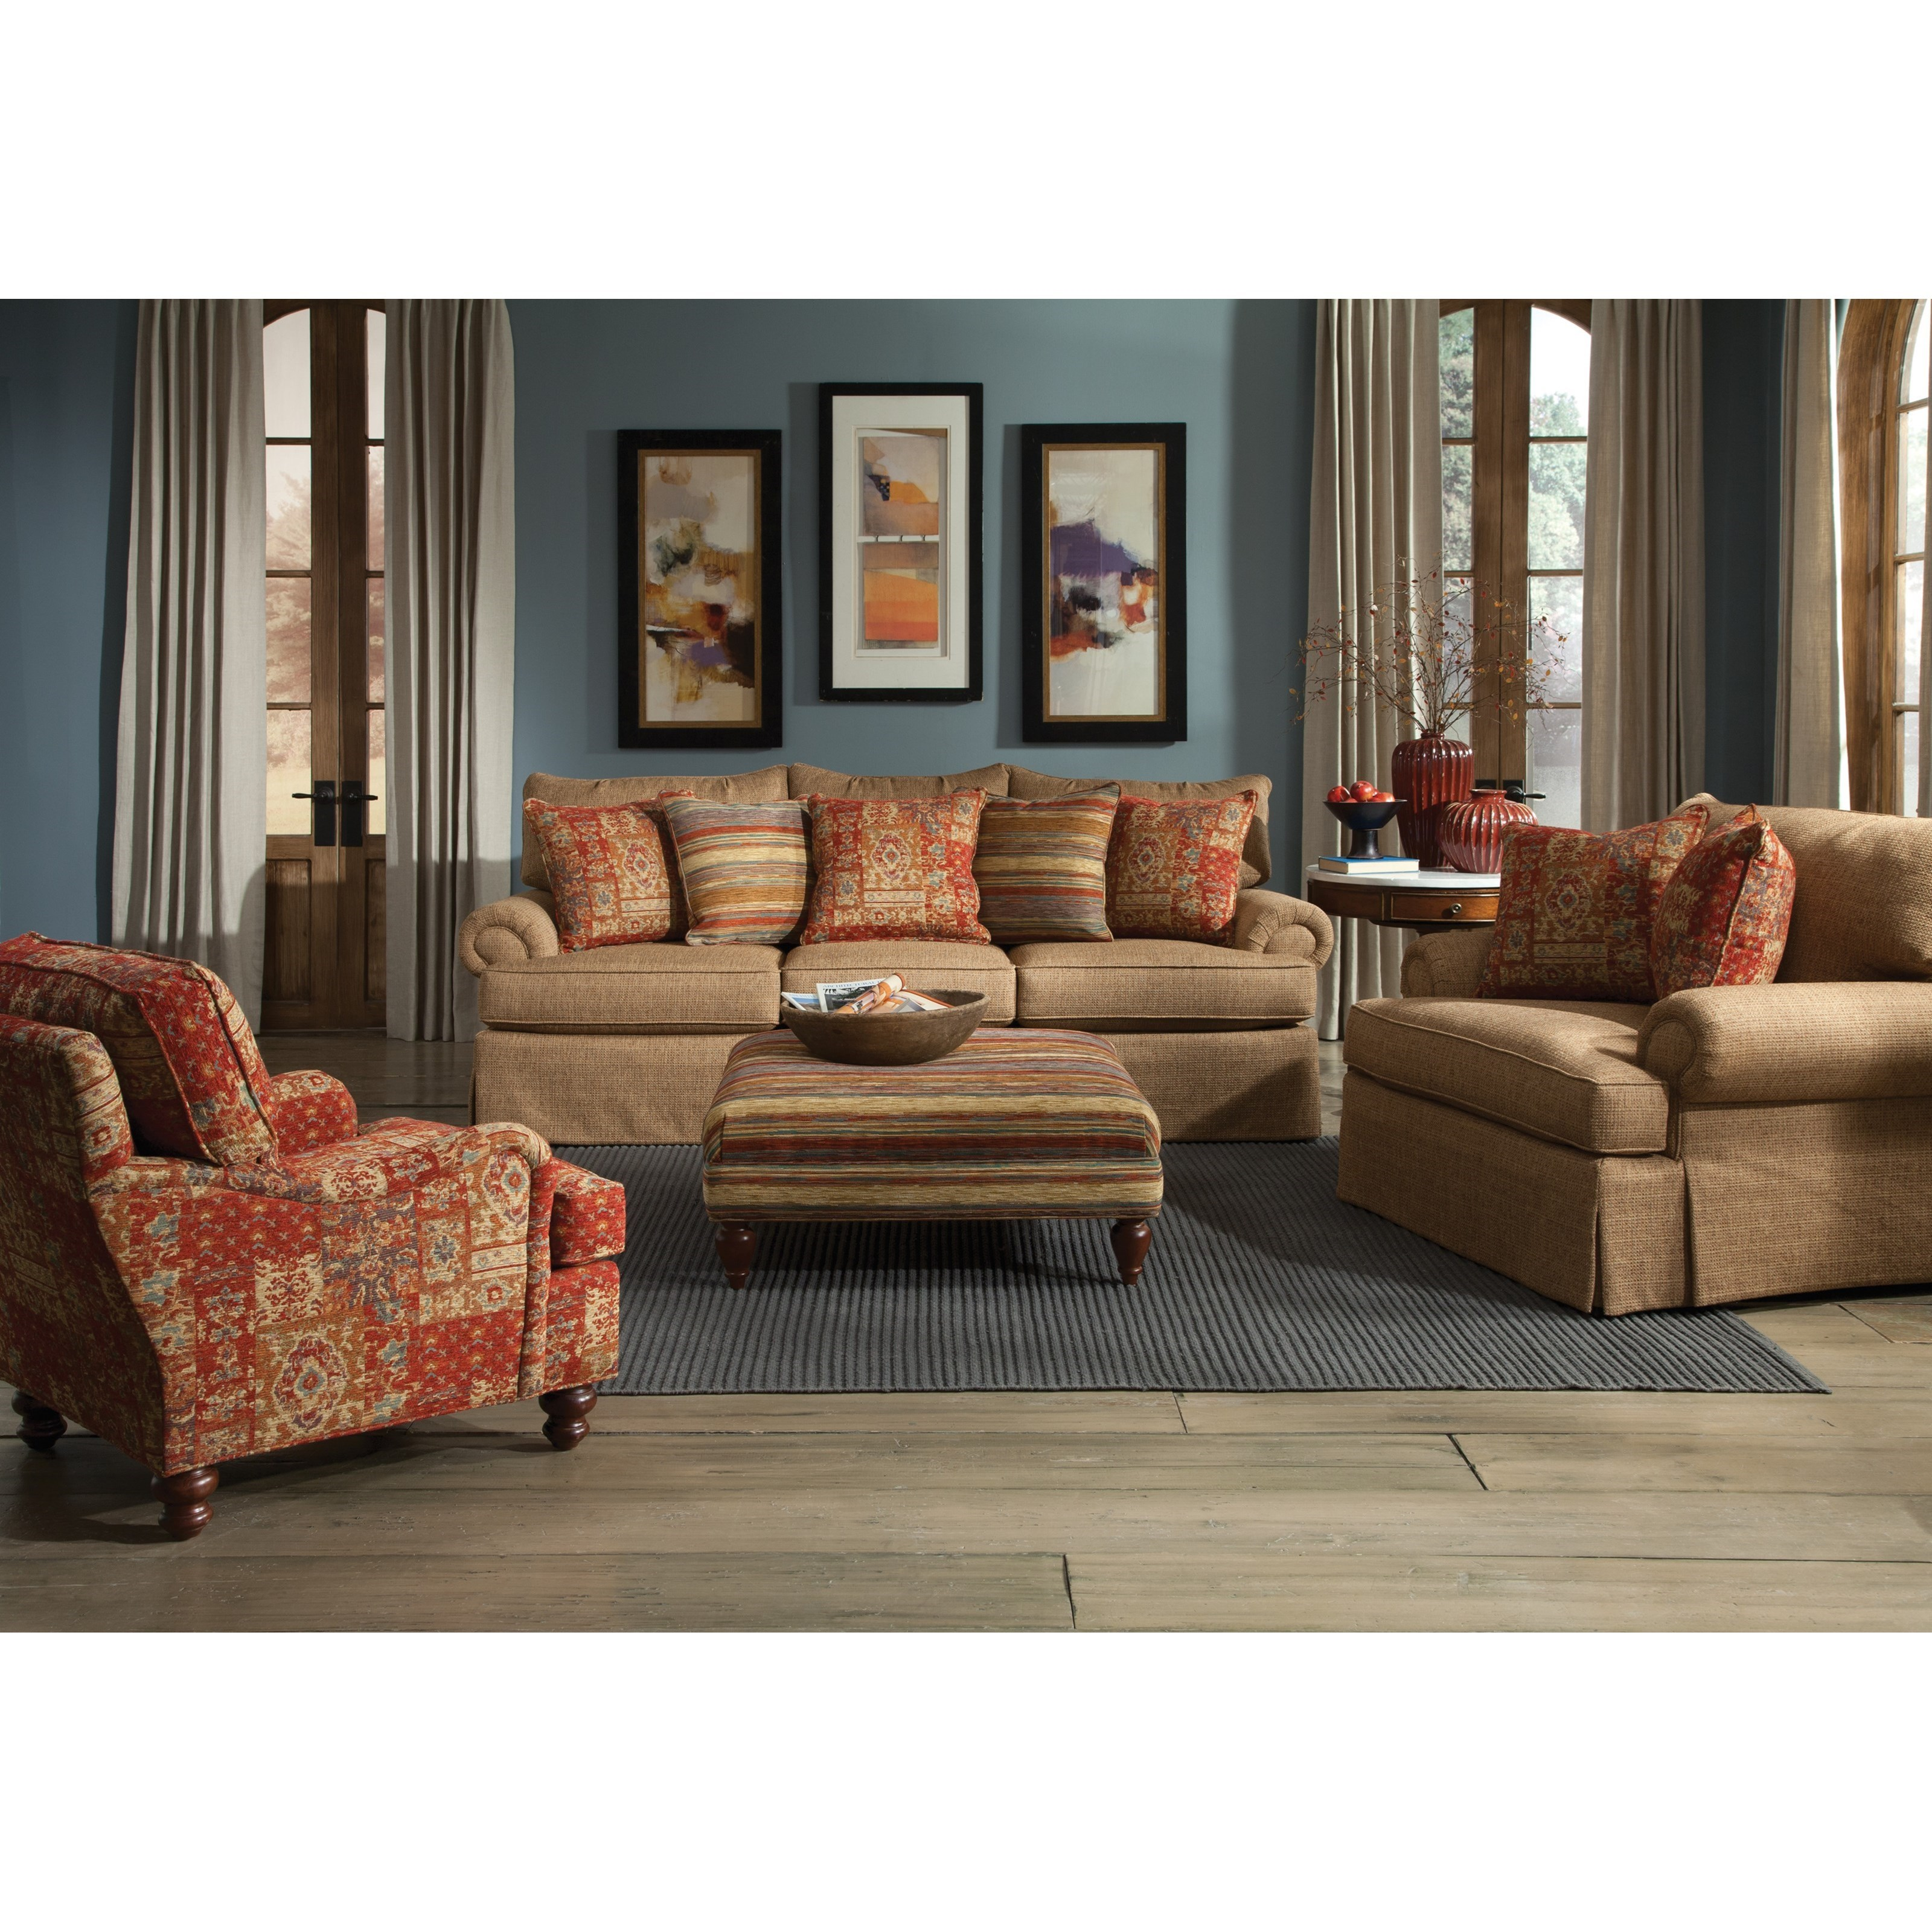 927550BD Living Room Group by Craftmaster at Esprit Decor Home Furnishings